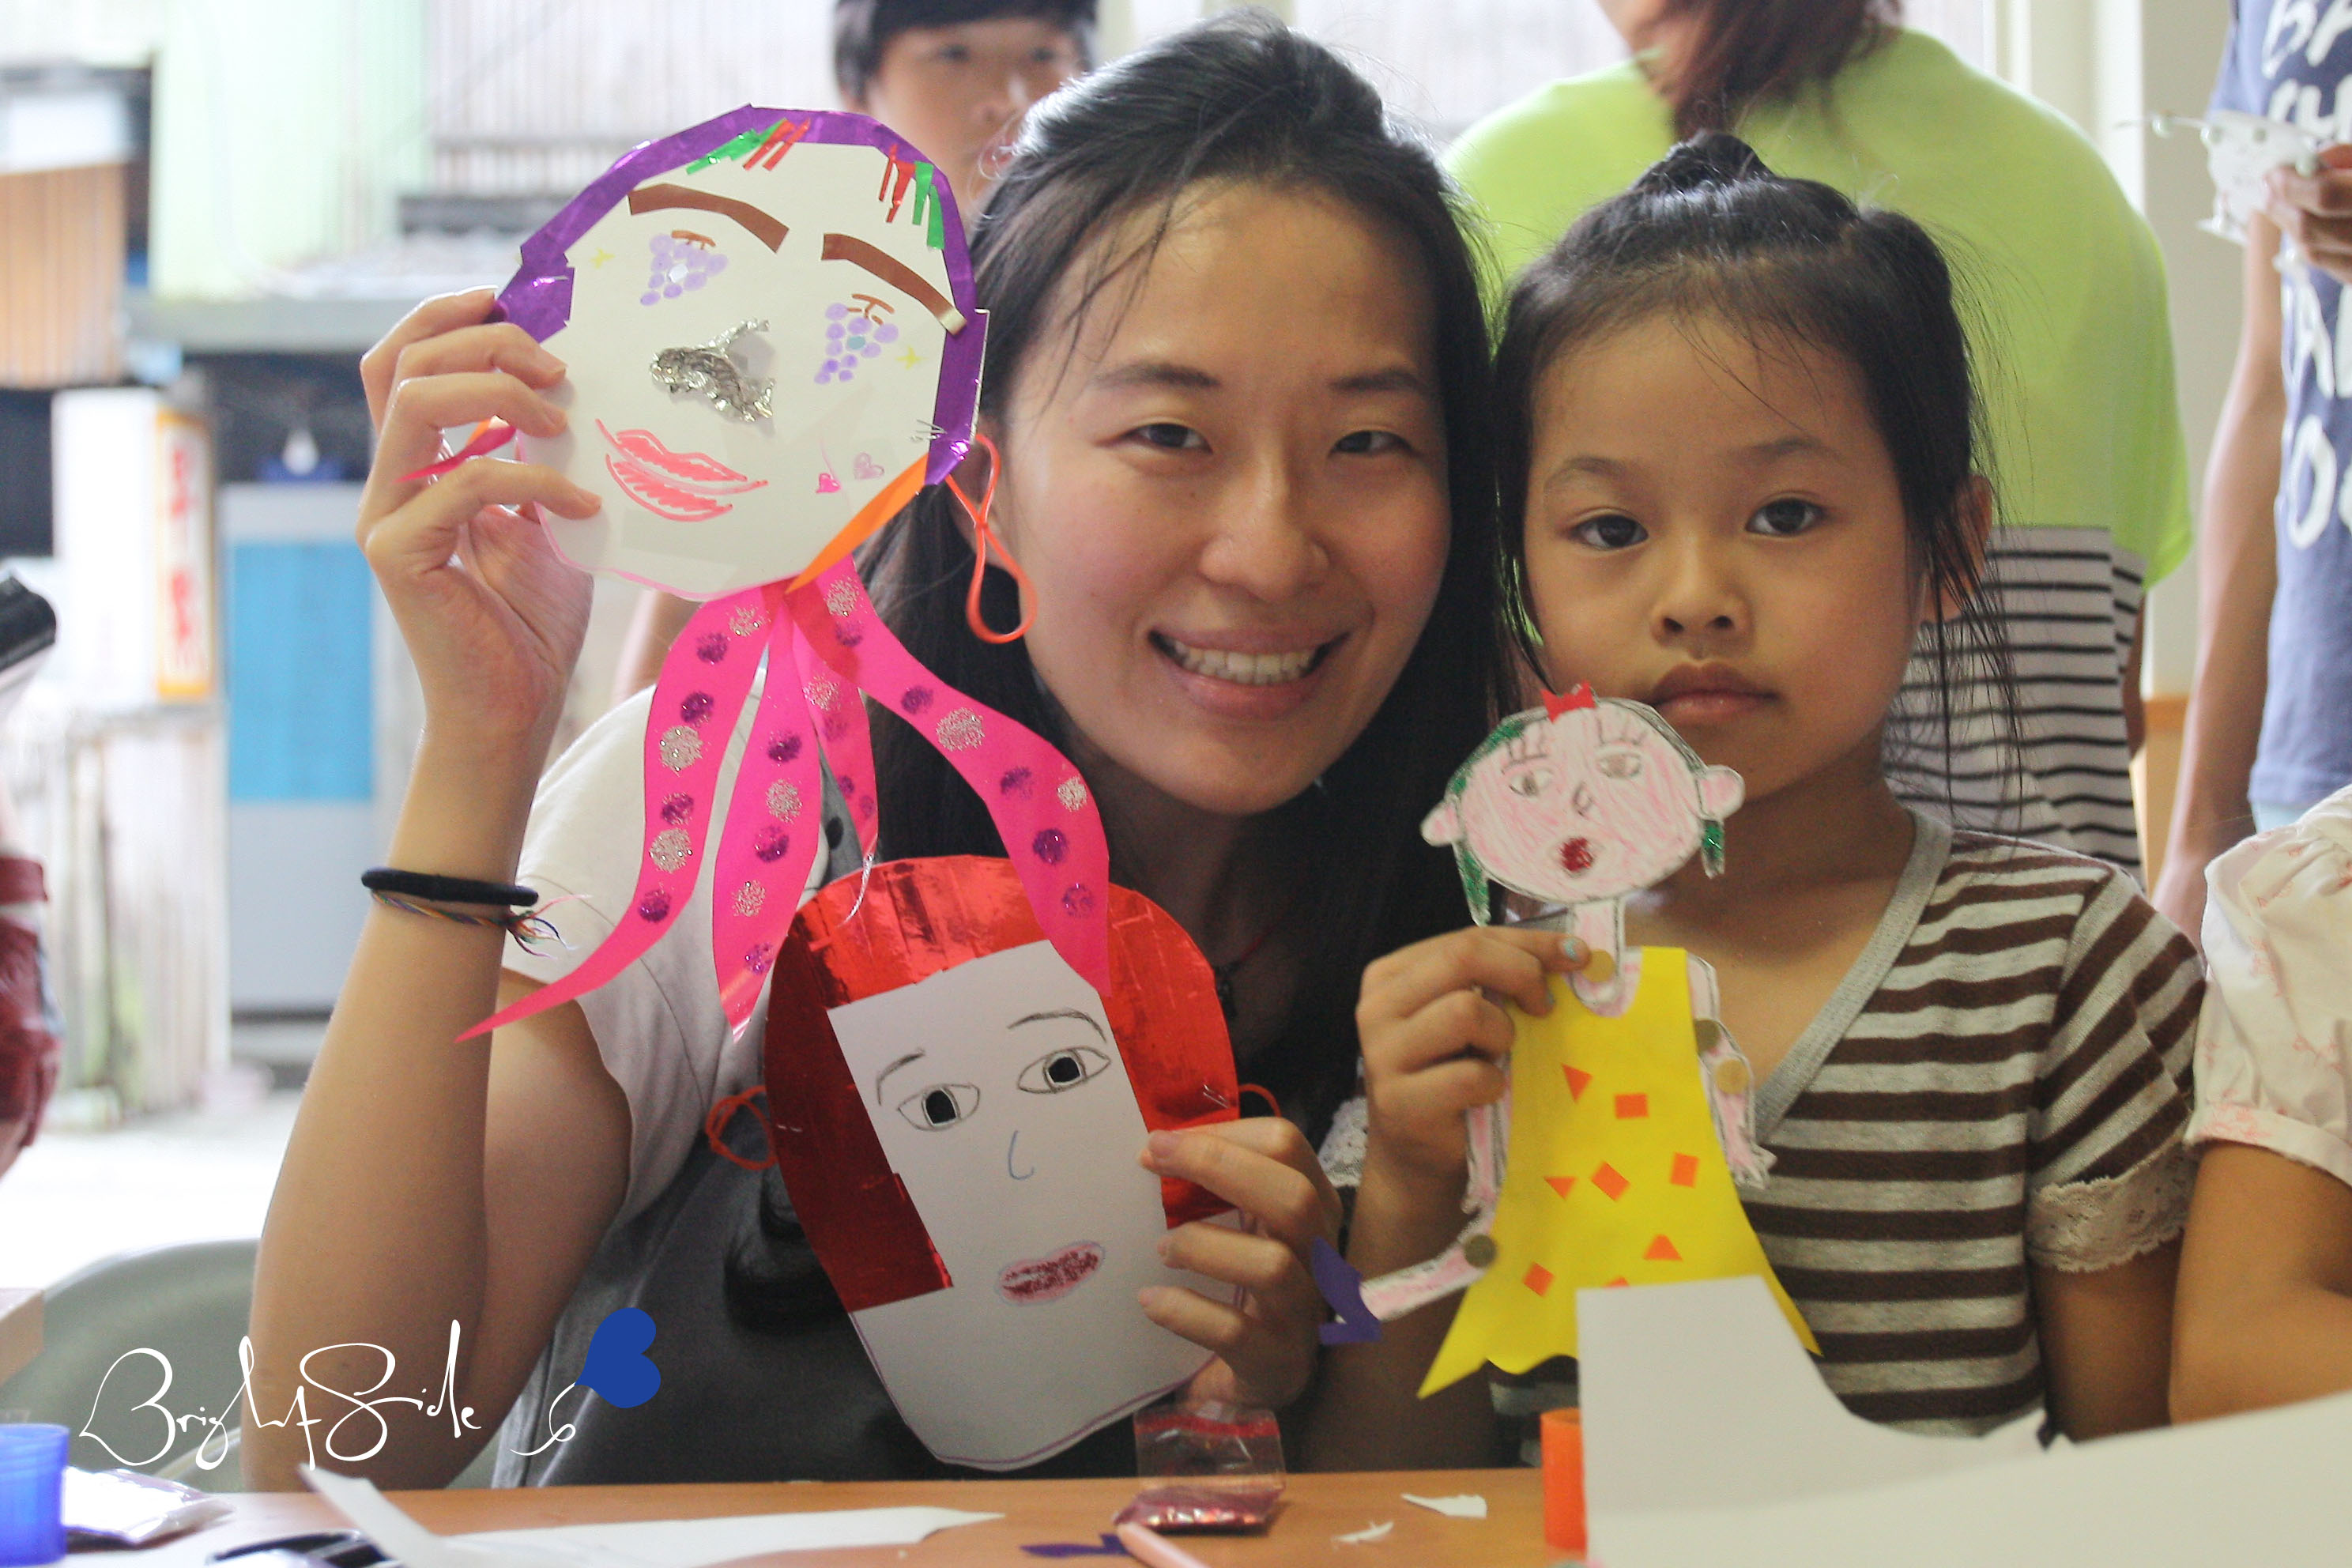 News Reel: Nonprofit Spotlight: Bright Side Projects Offers Mentoring, Support to People in Taiwan